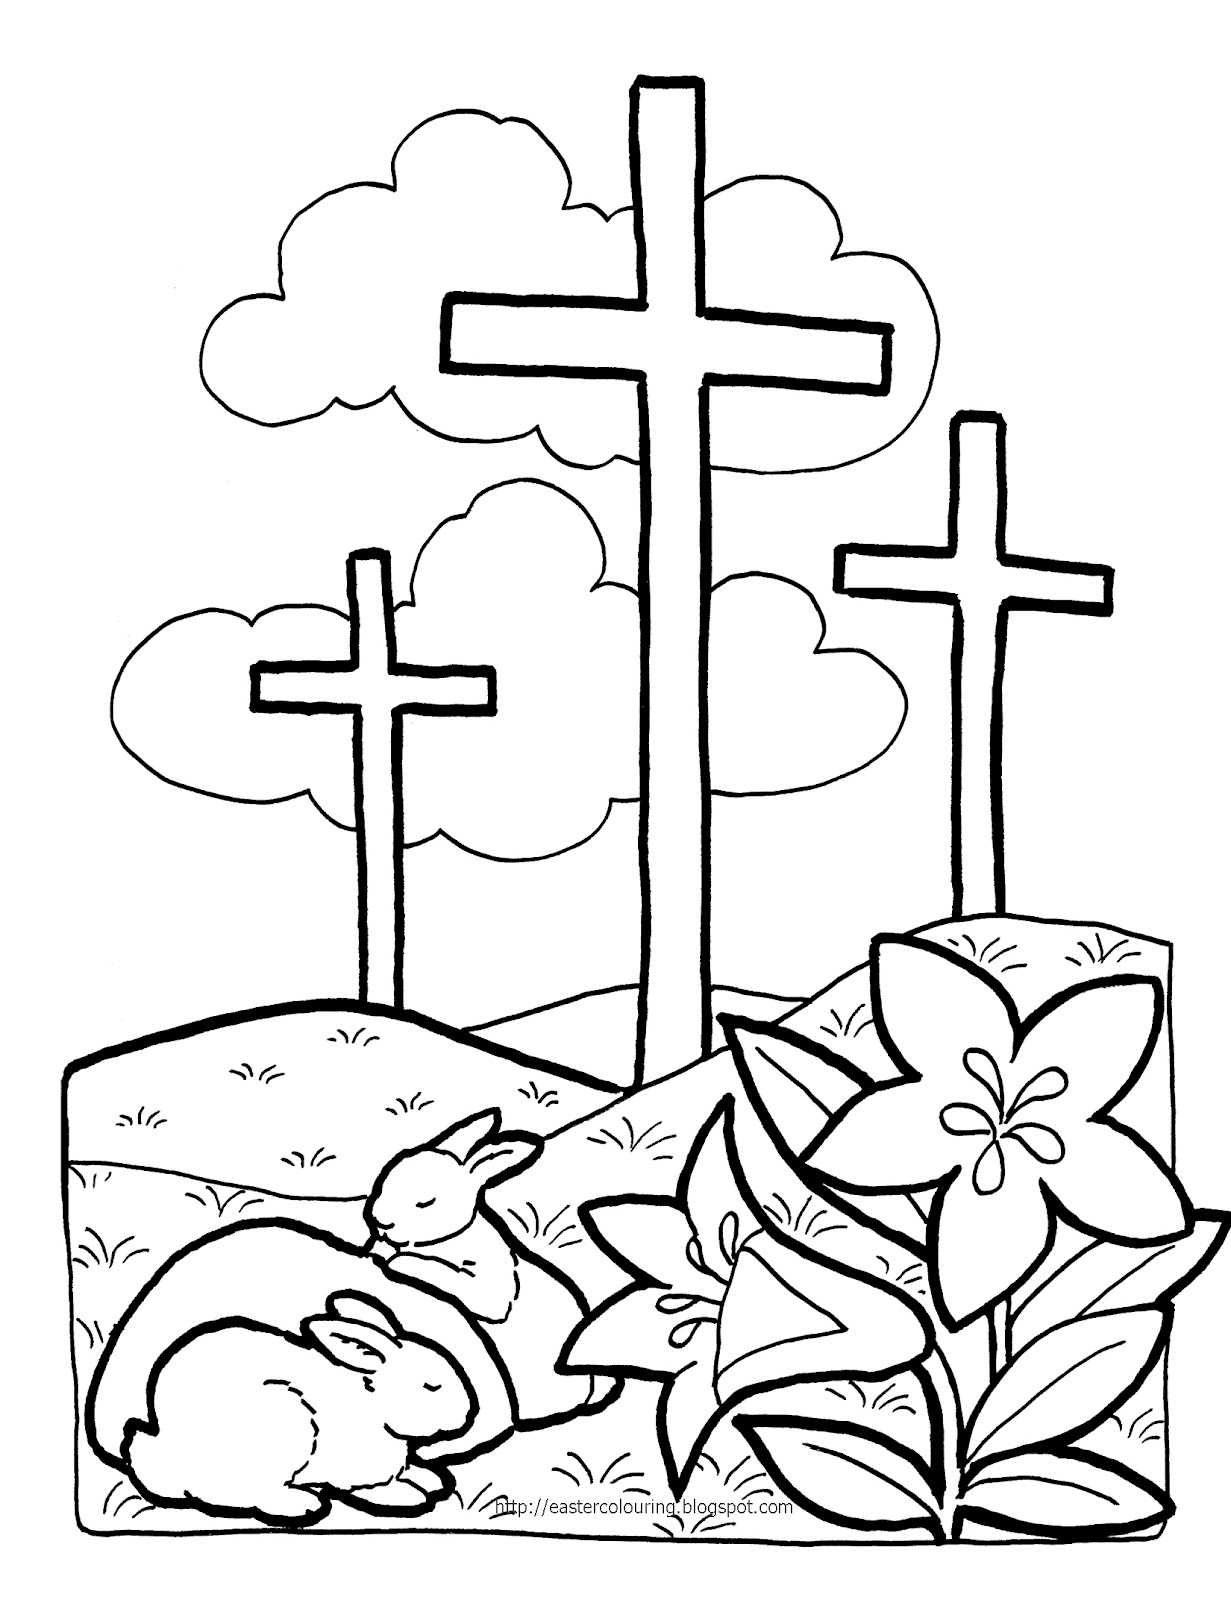 christian child coloring pages free - photo#25